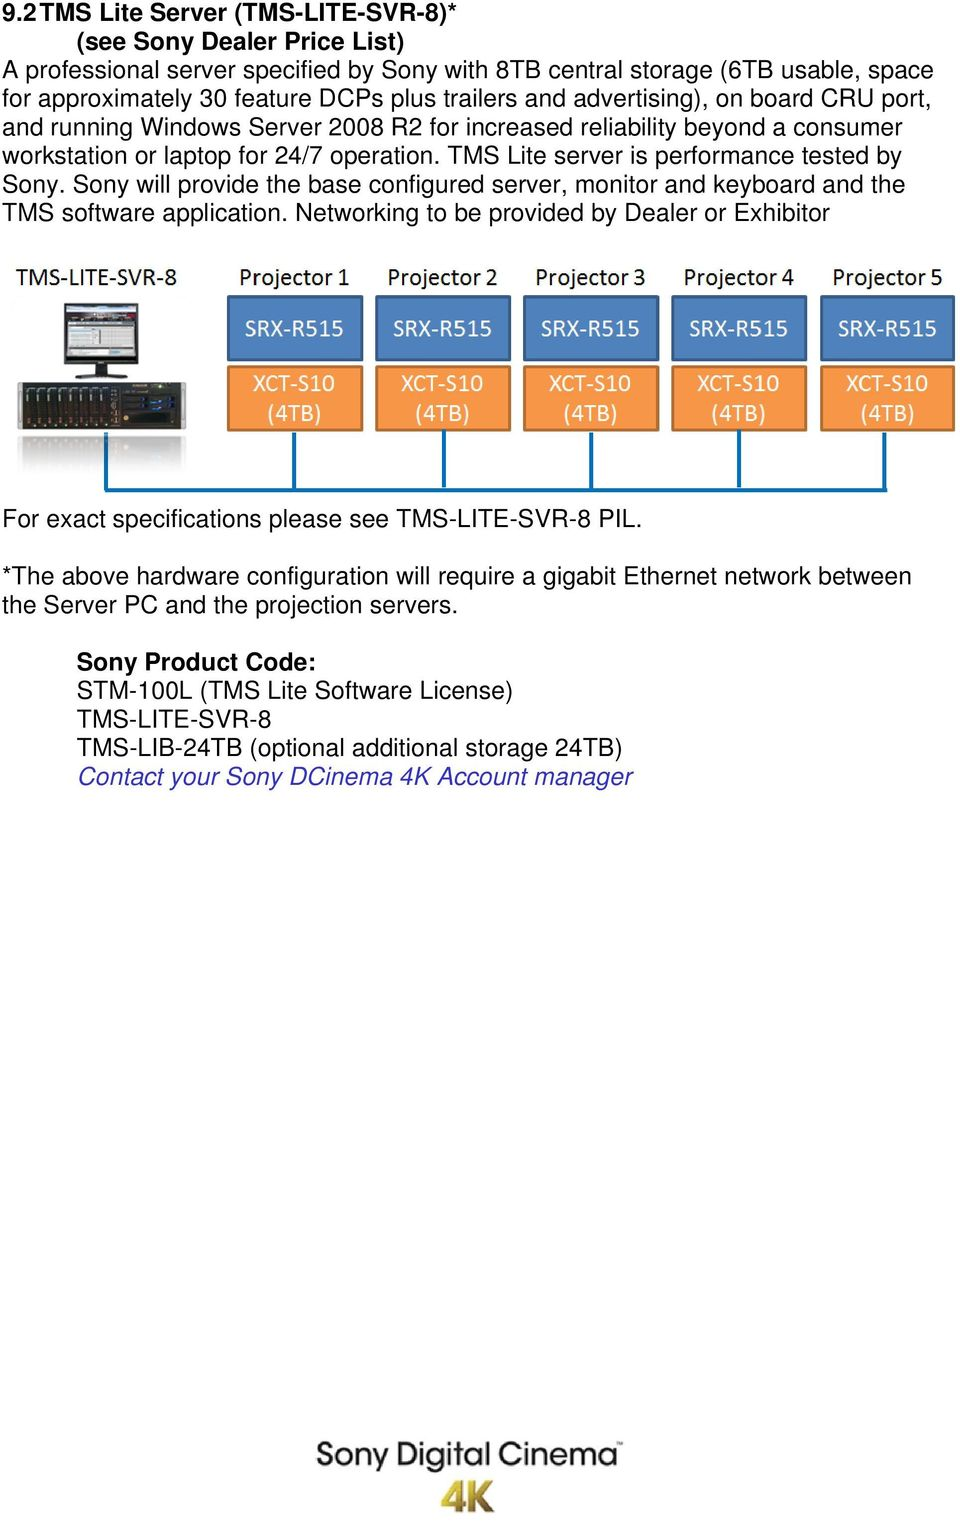 Product Information- Sony Theatre Management S System Lite and